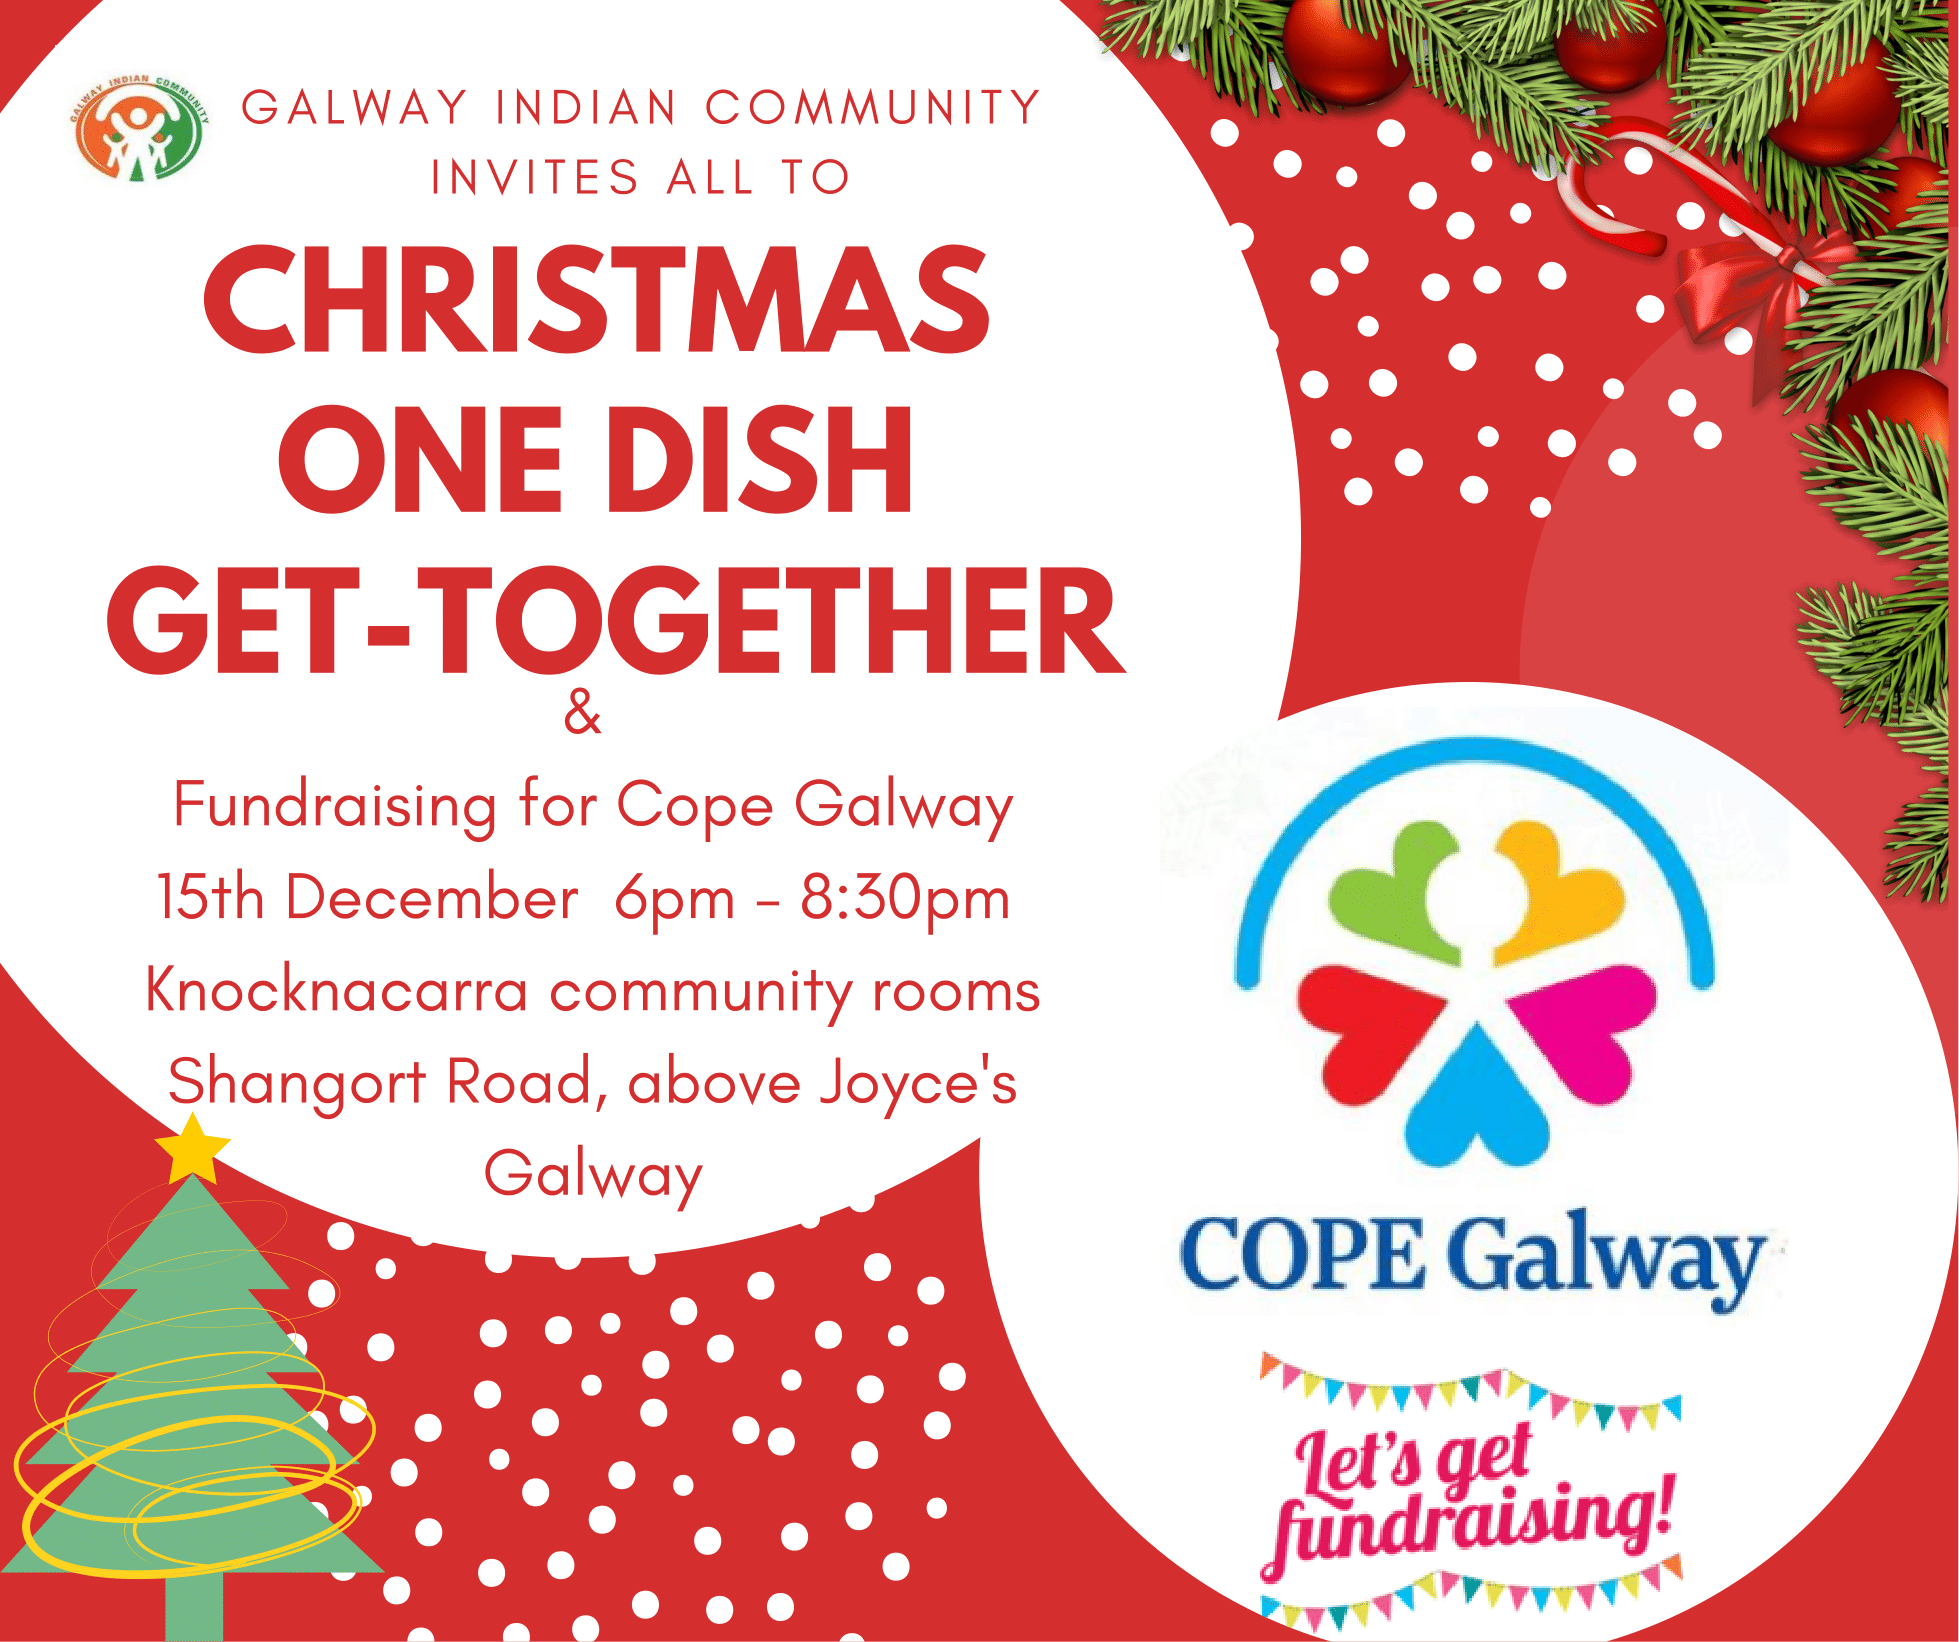 Christmas One Dish Get Together (Potluck), Indian Community Galway ...